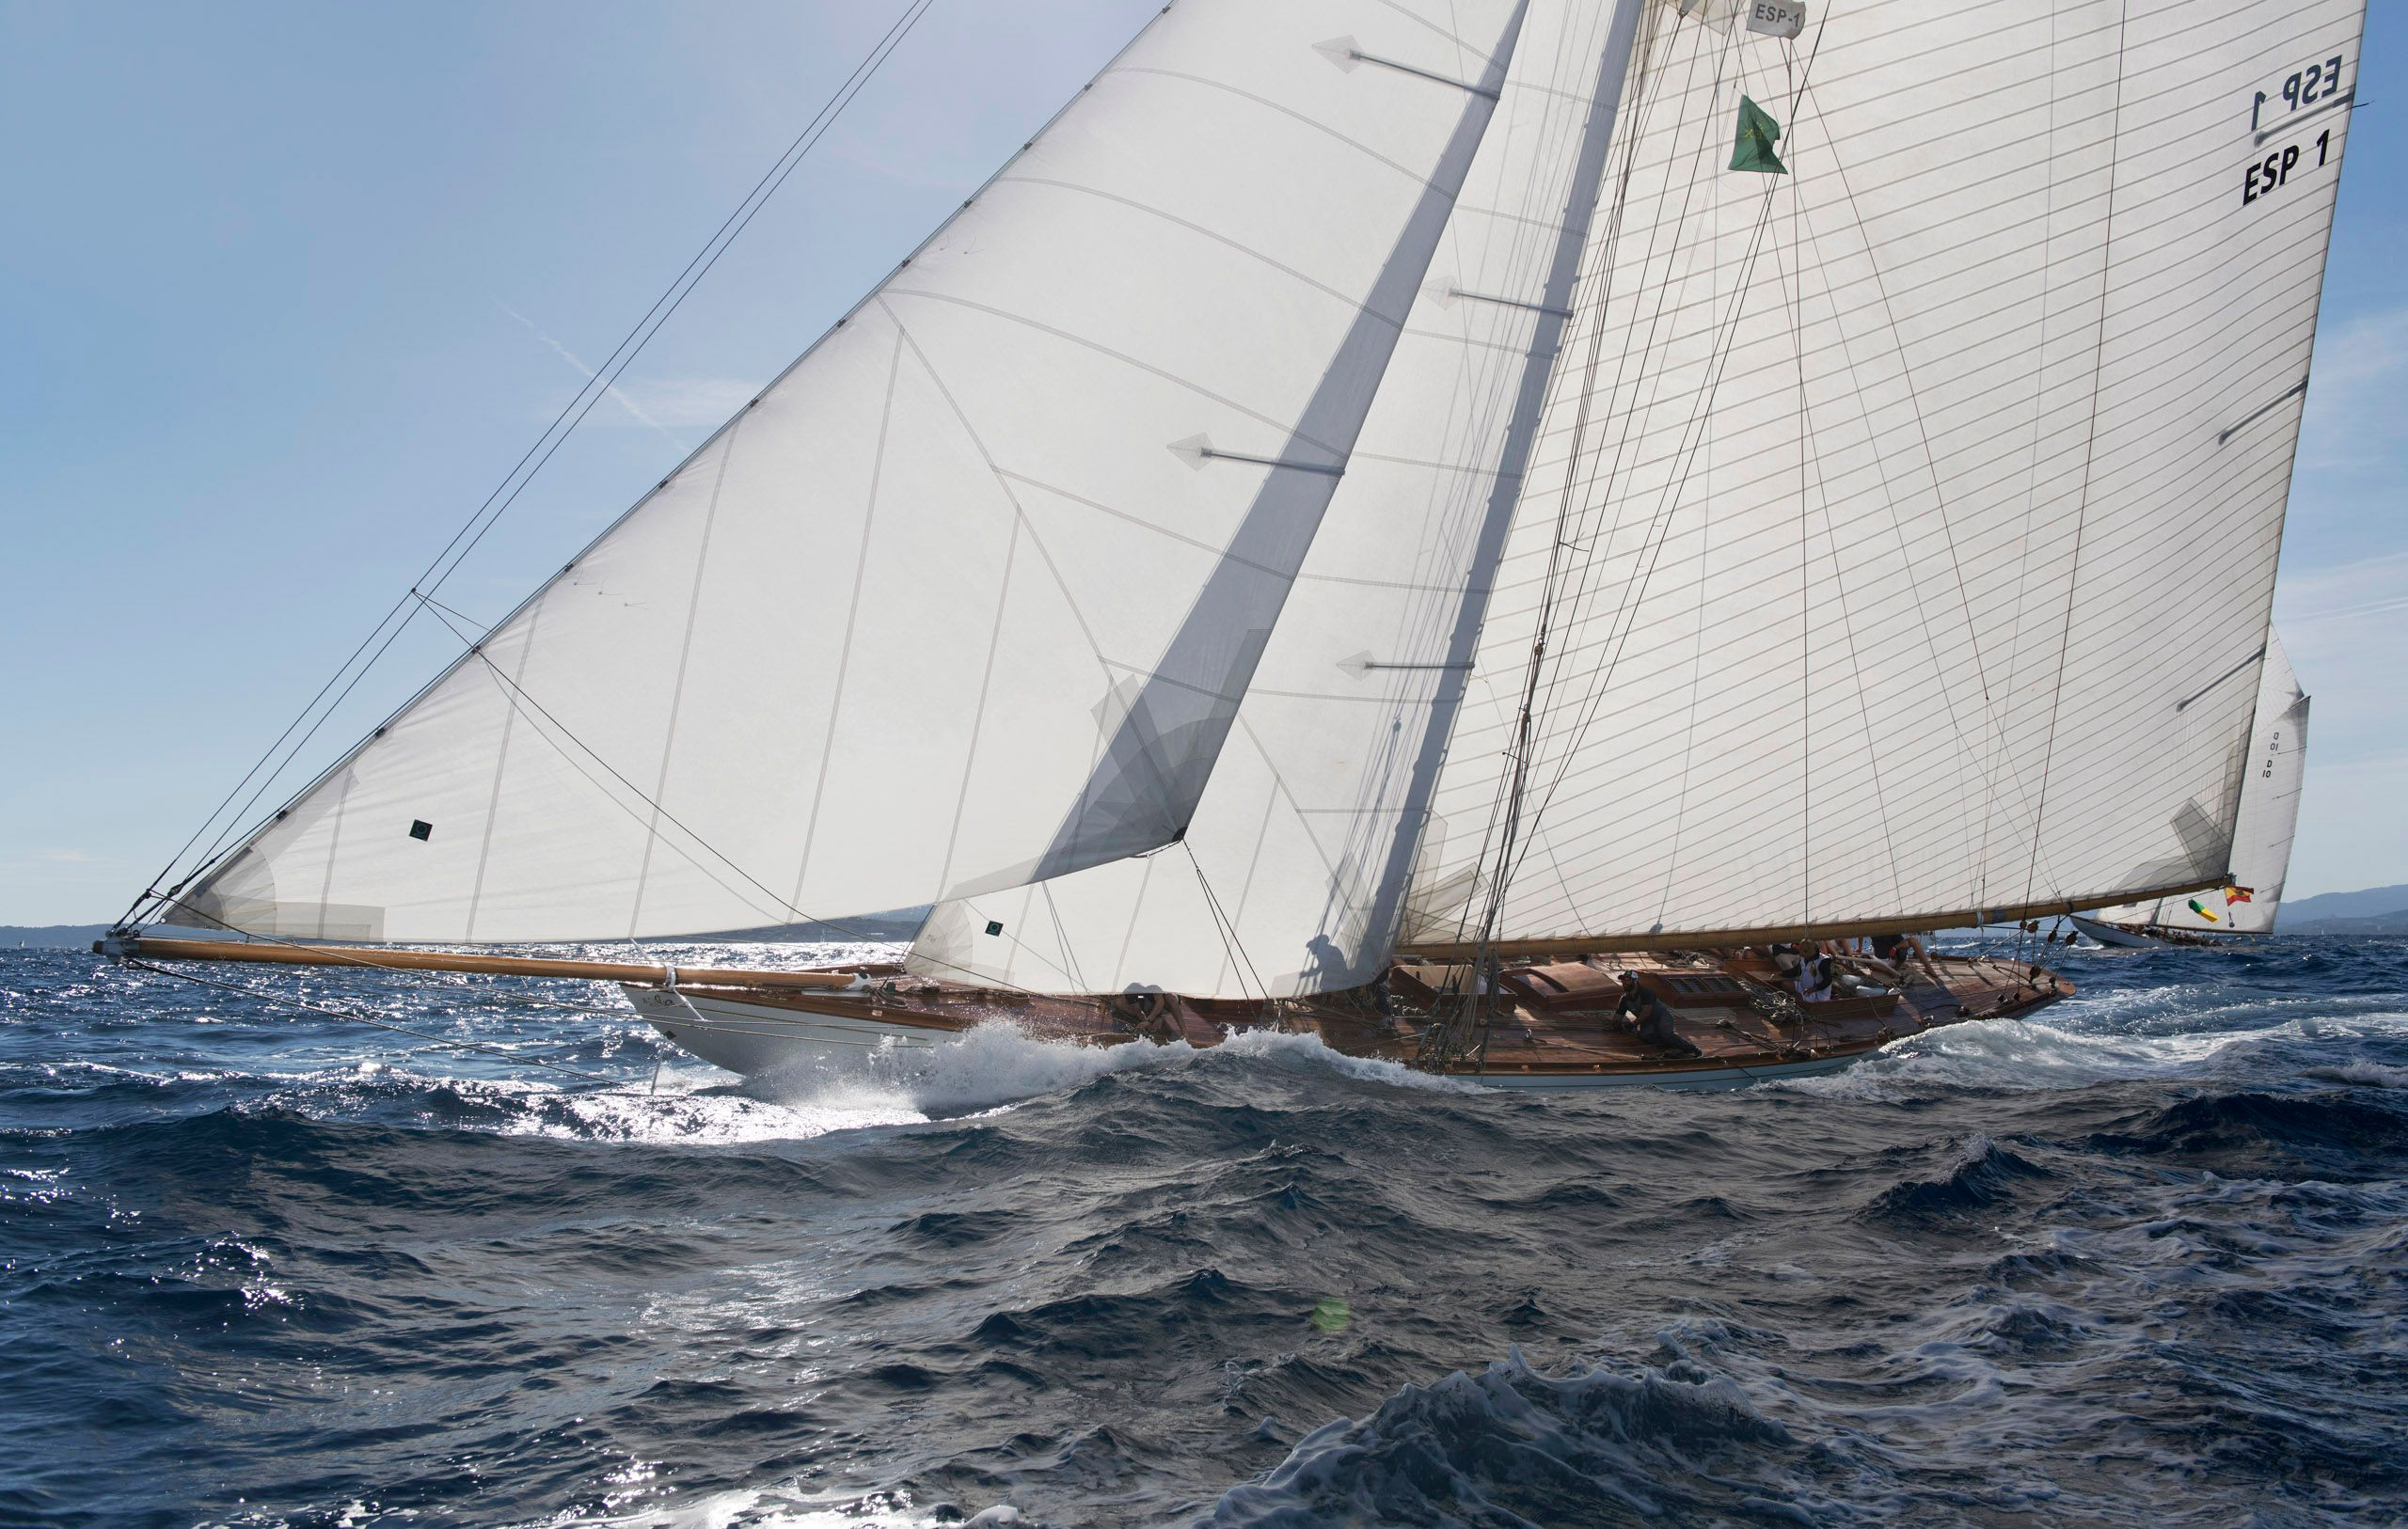 Hispania - Fife 15 Meter